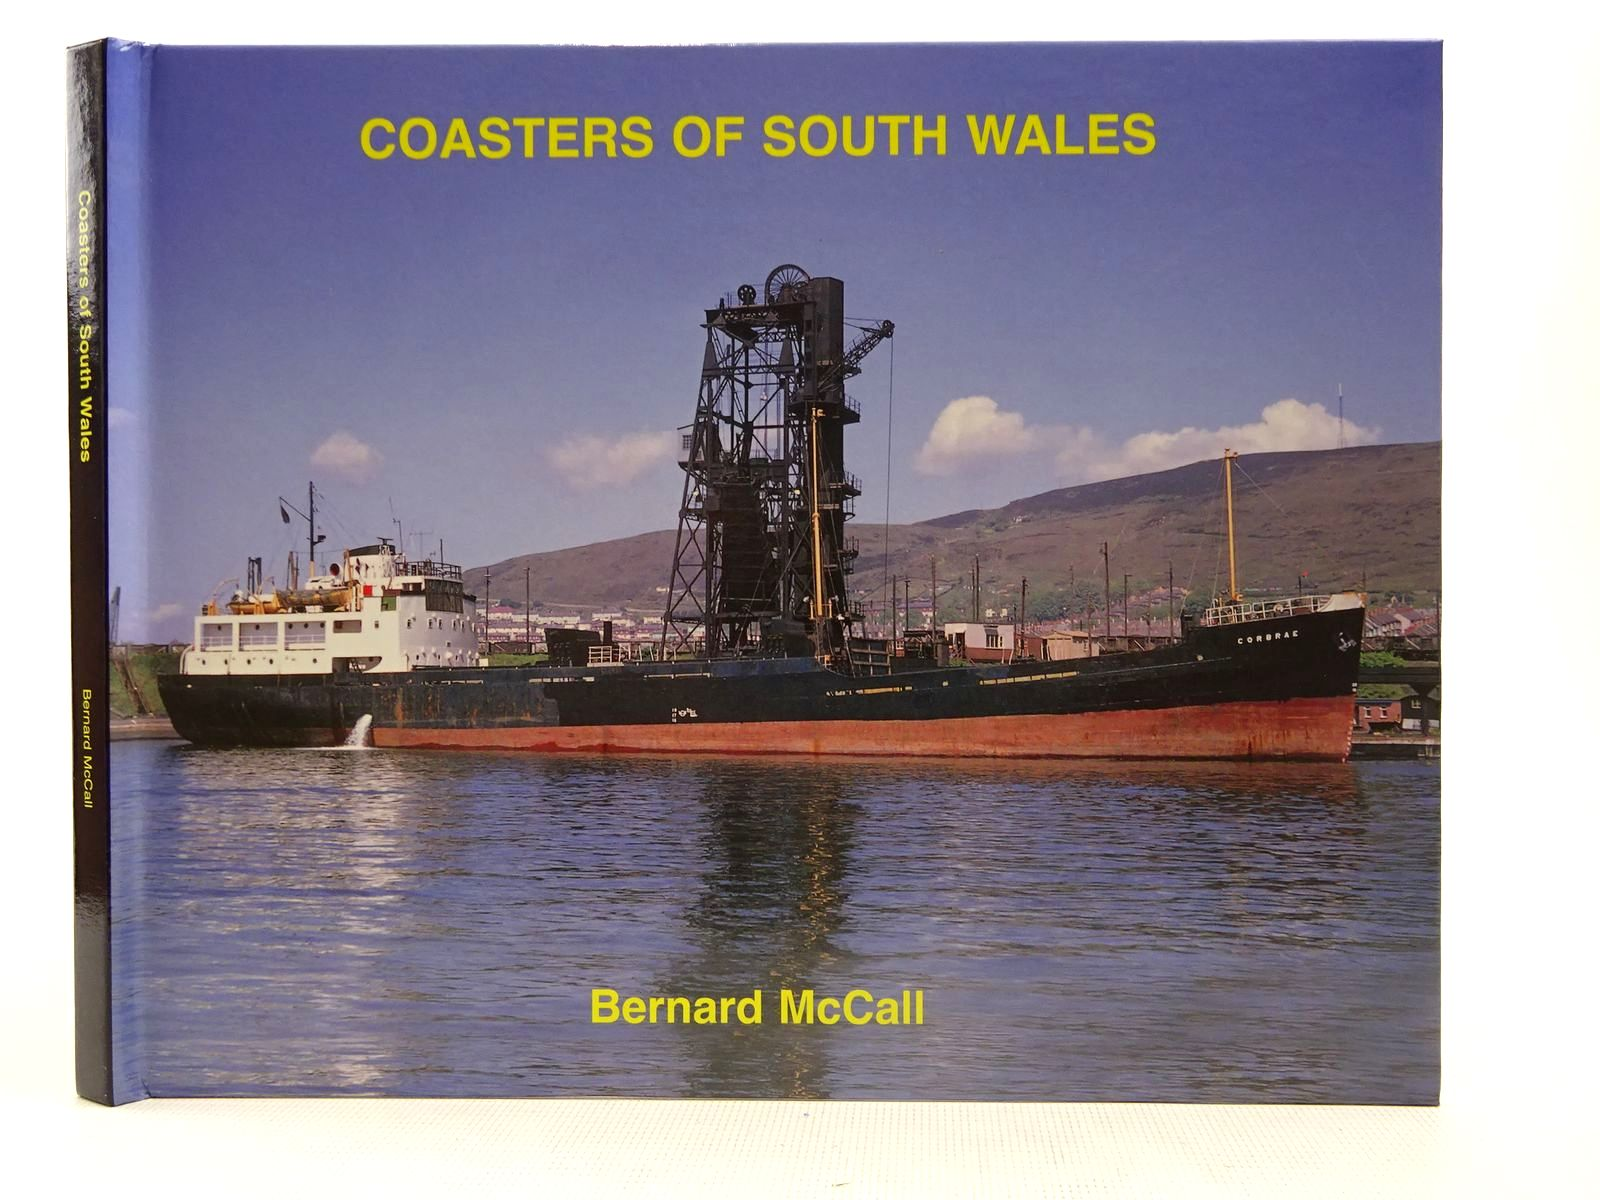 Photo of COASTERS OF SOUTH WALES written by McCall, Bernard published by Bernard McCall (STOCK CODE: 2128307)  for sale by Stella & Rose's Books